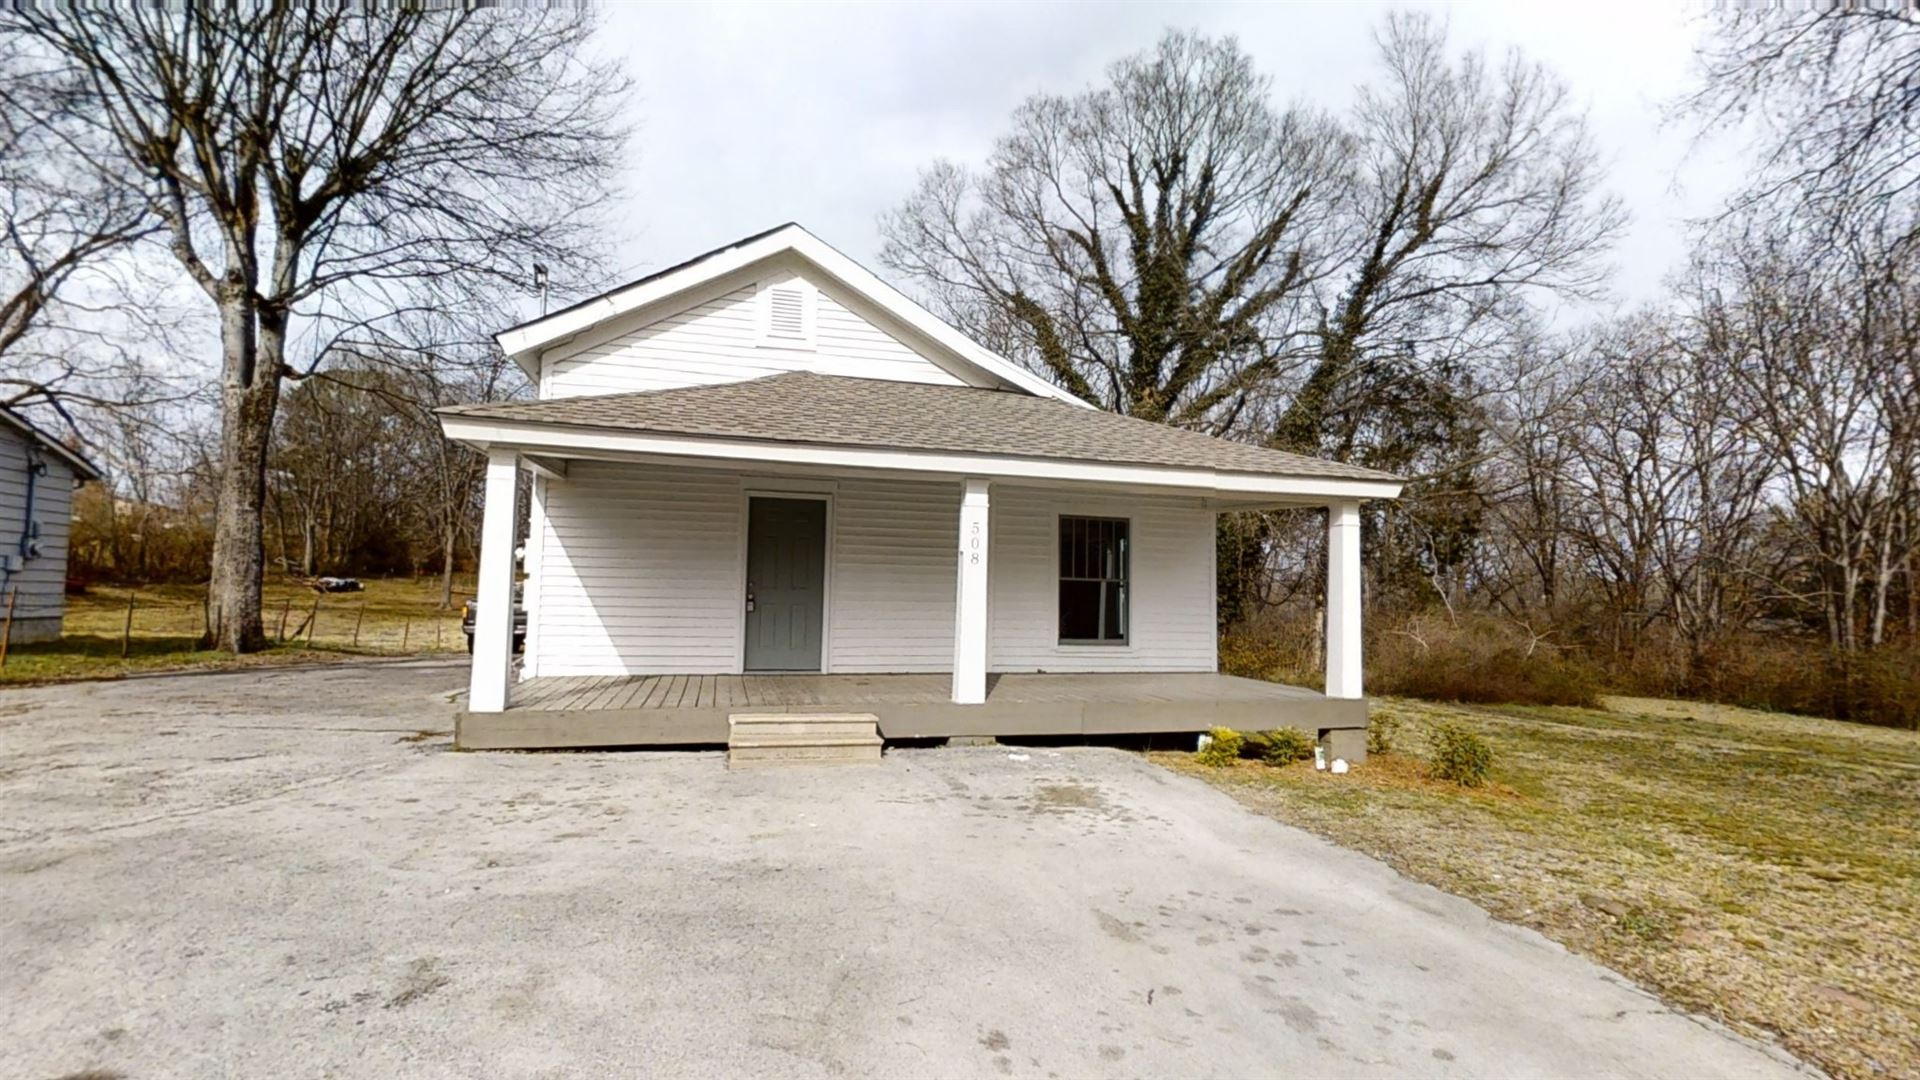 508 W 12th St, Columbia, TN 38401 - MLS#: 2226393